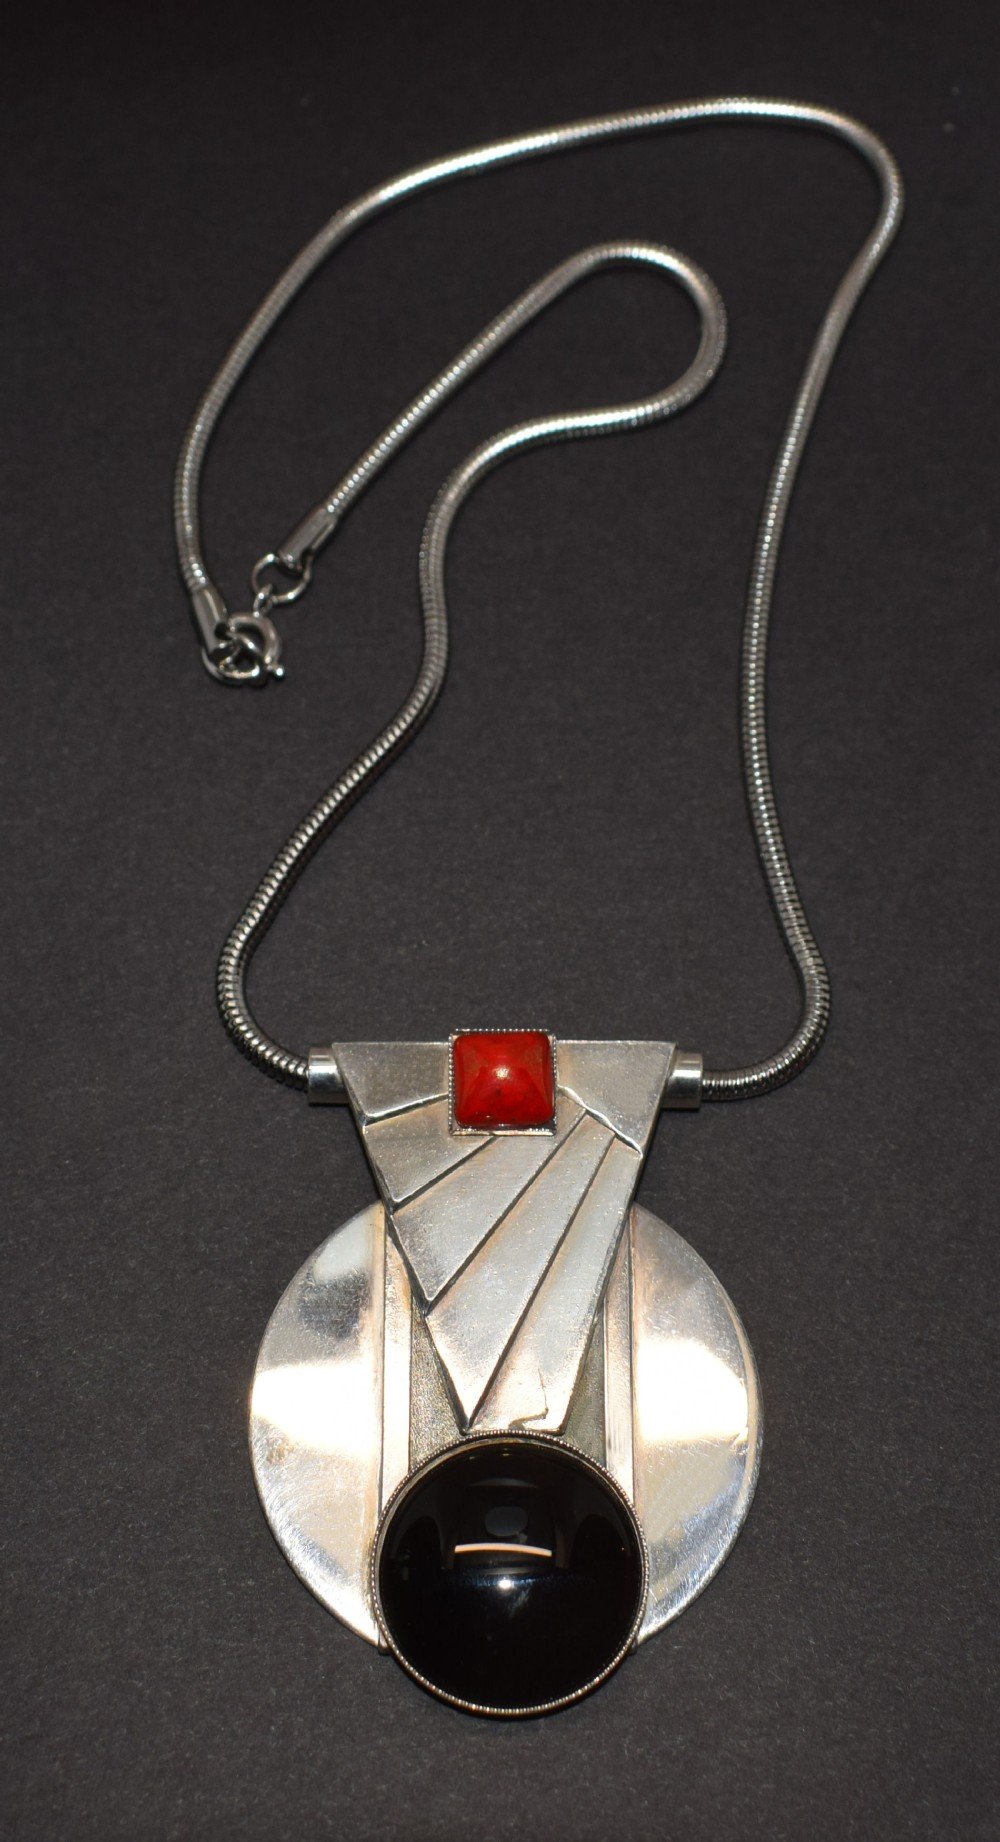 art deco geometric modernist ladies necklace